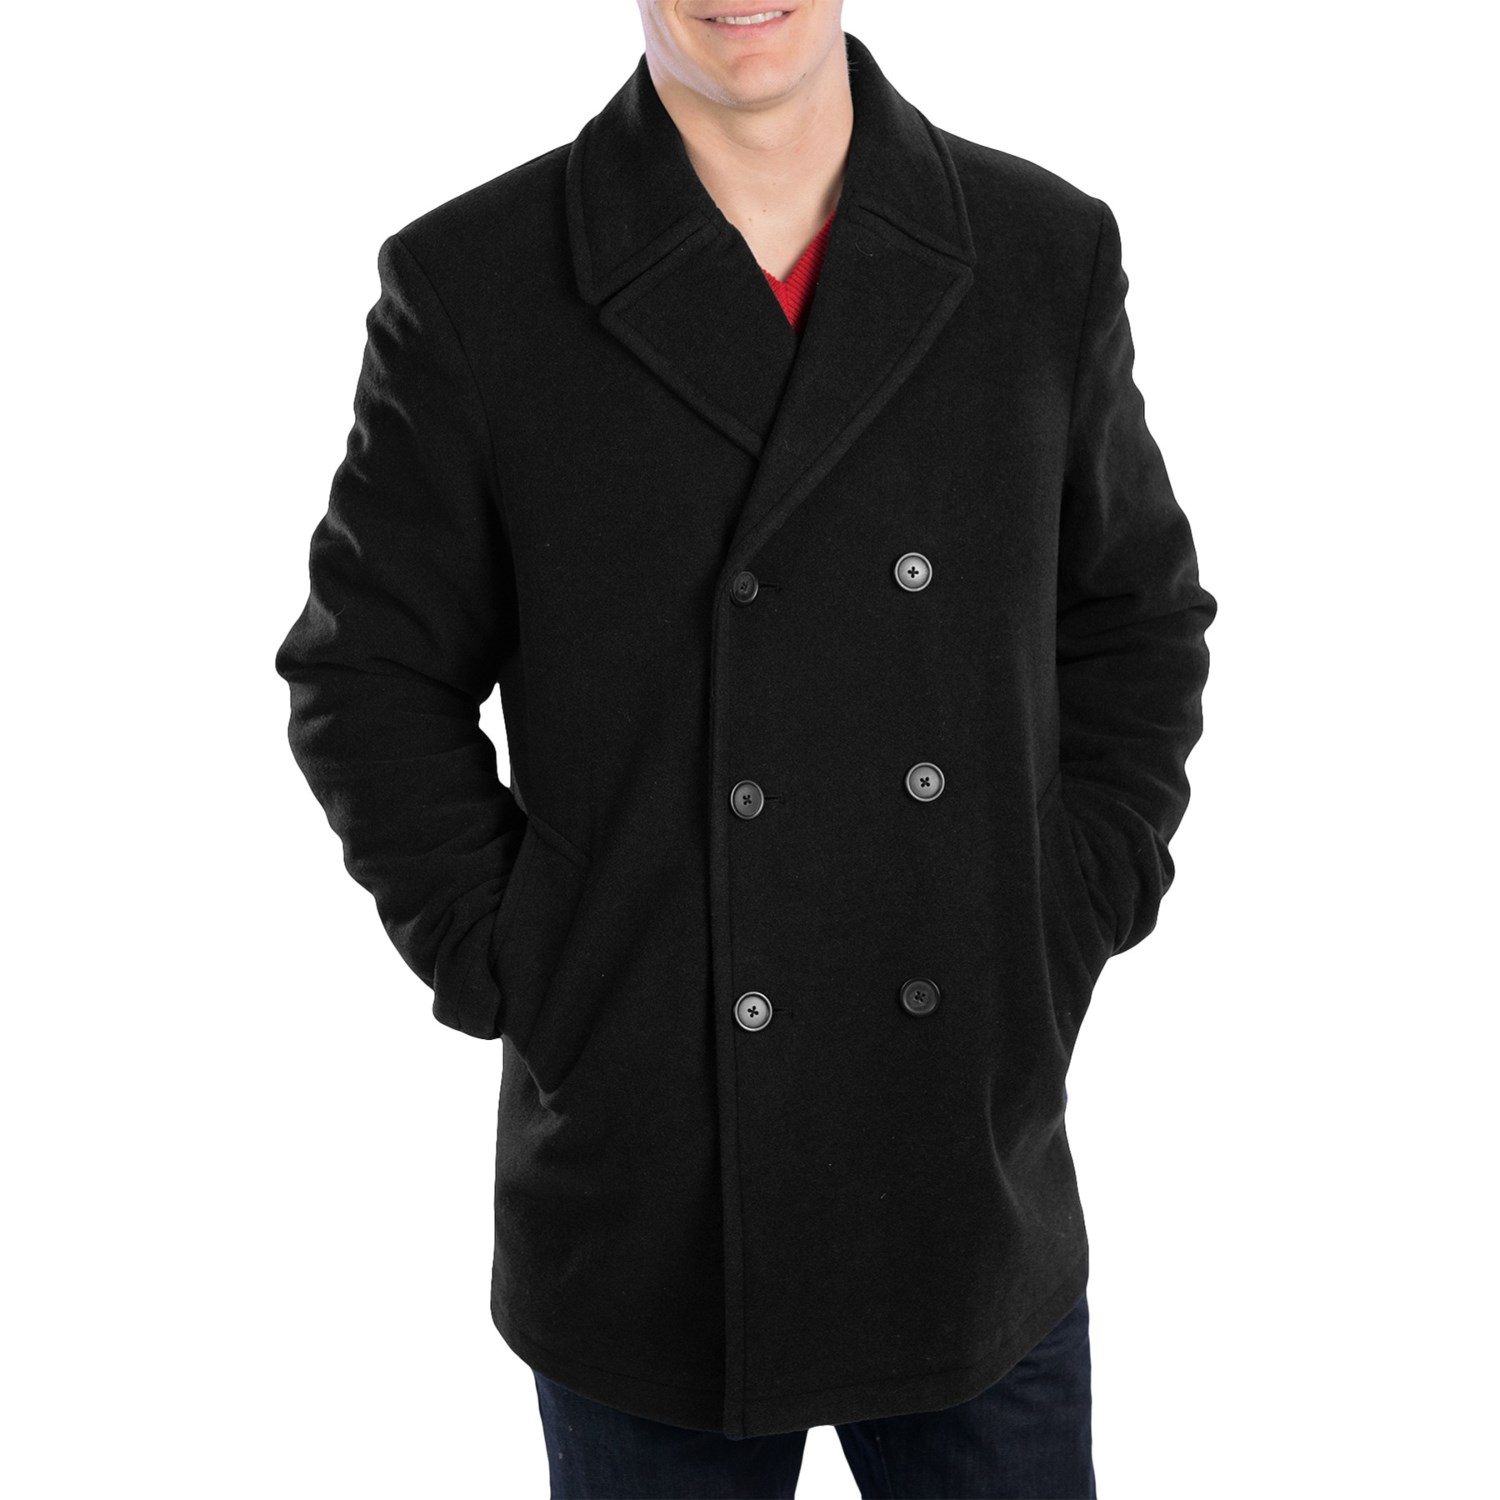 Find great deals on eBay for men's black pea coat. Shop with confidence.